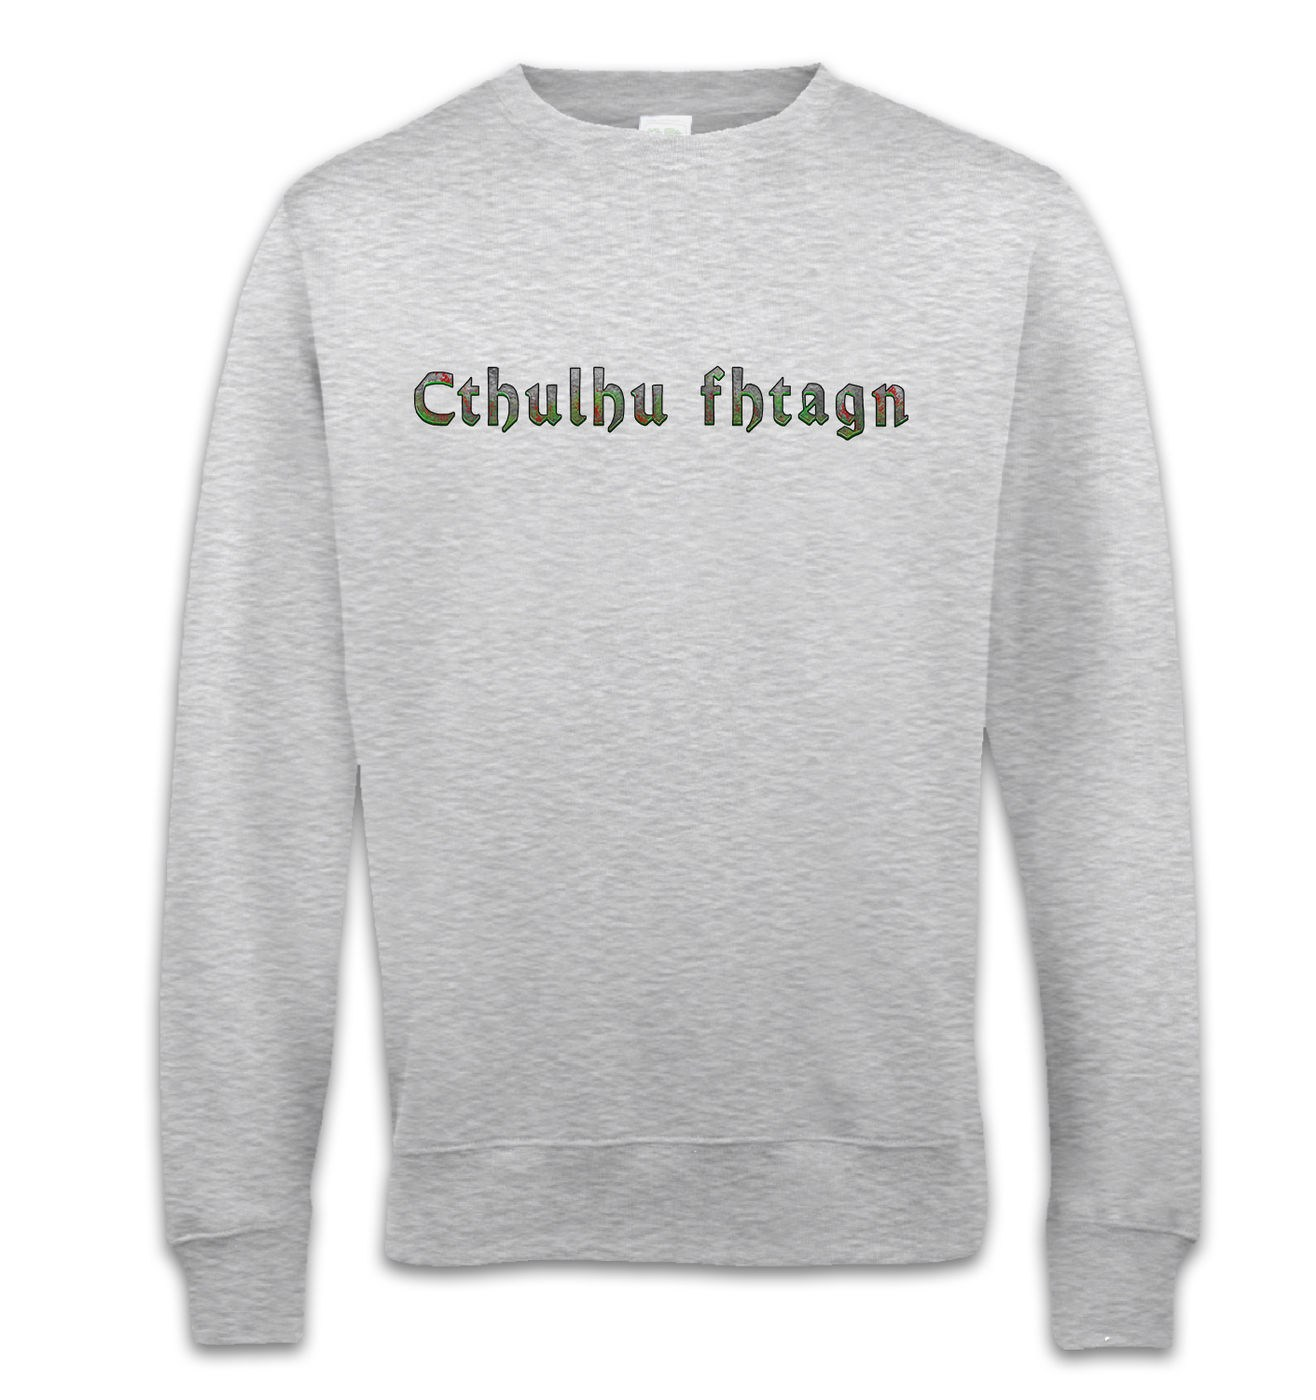 Cthulhu Fhtagn sweatshirt - stylish Lovecraft Cthulhu sweater